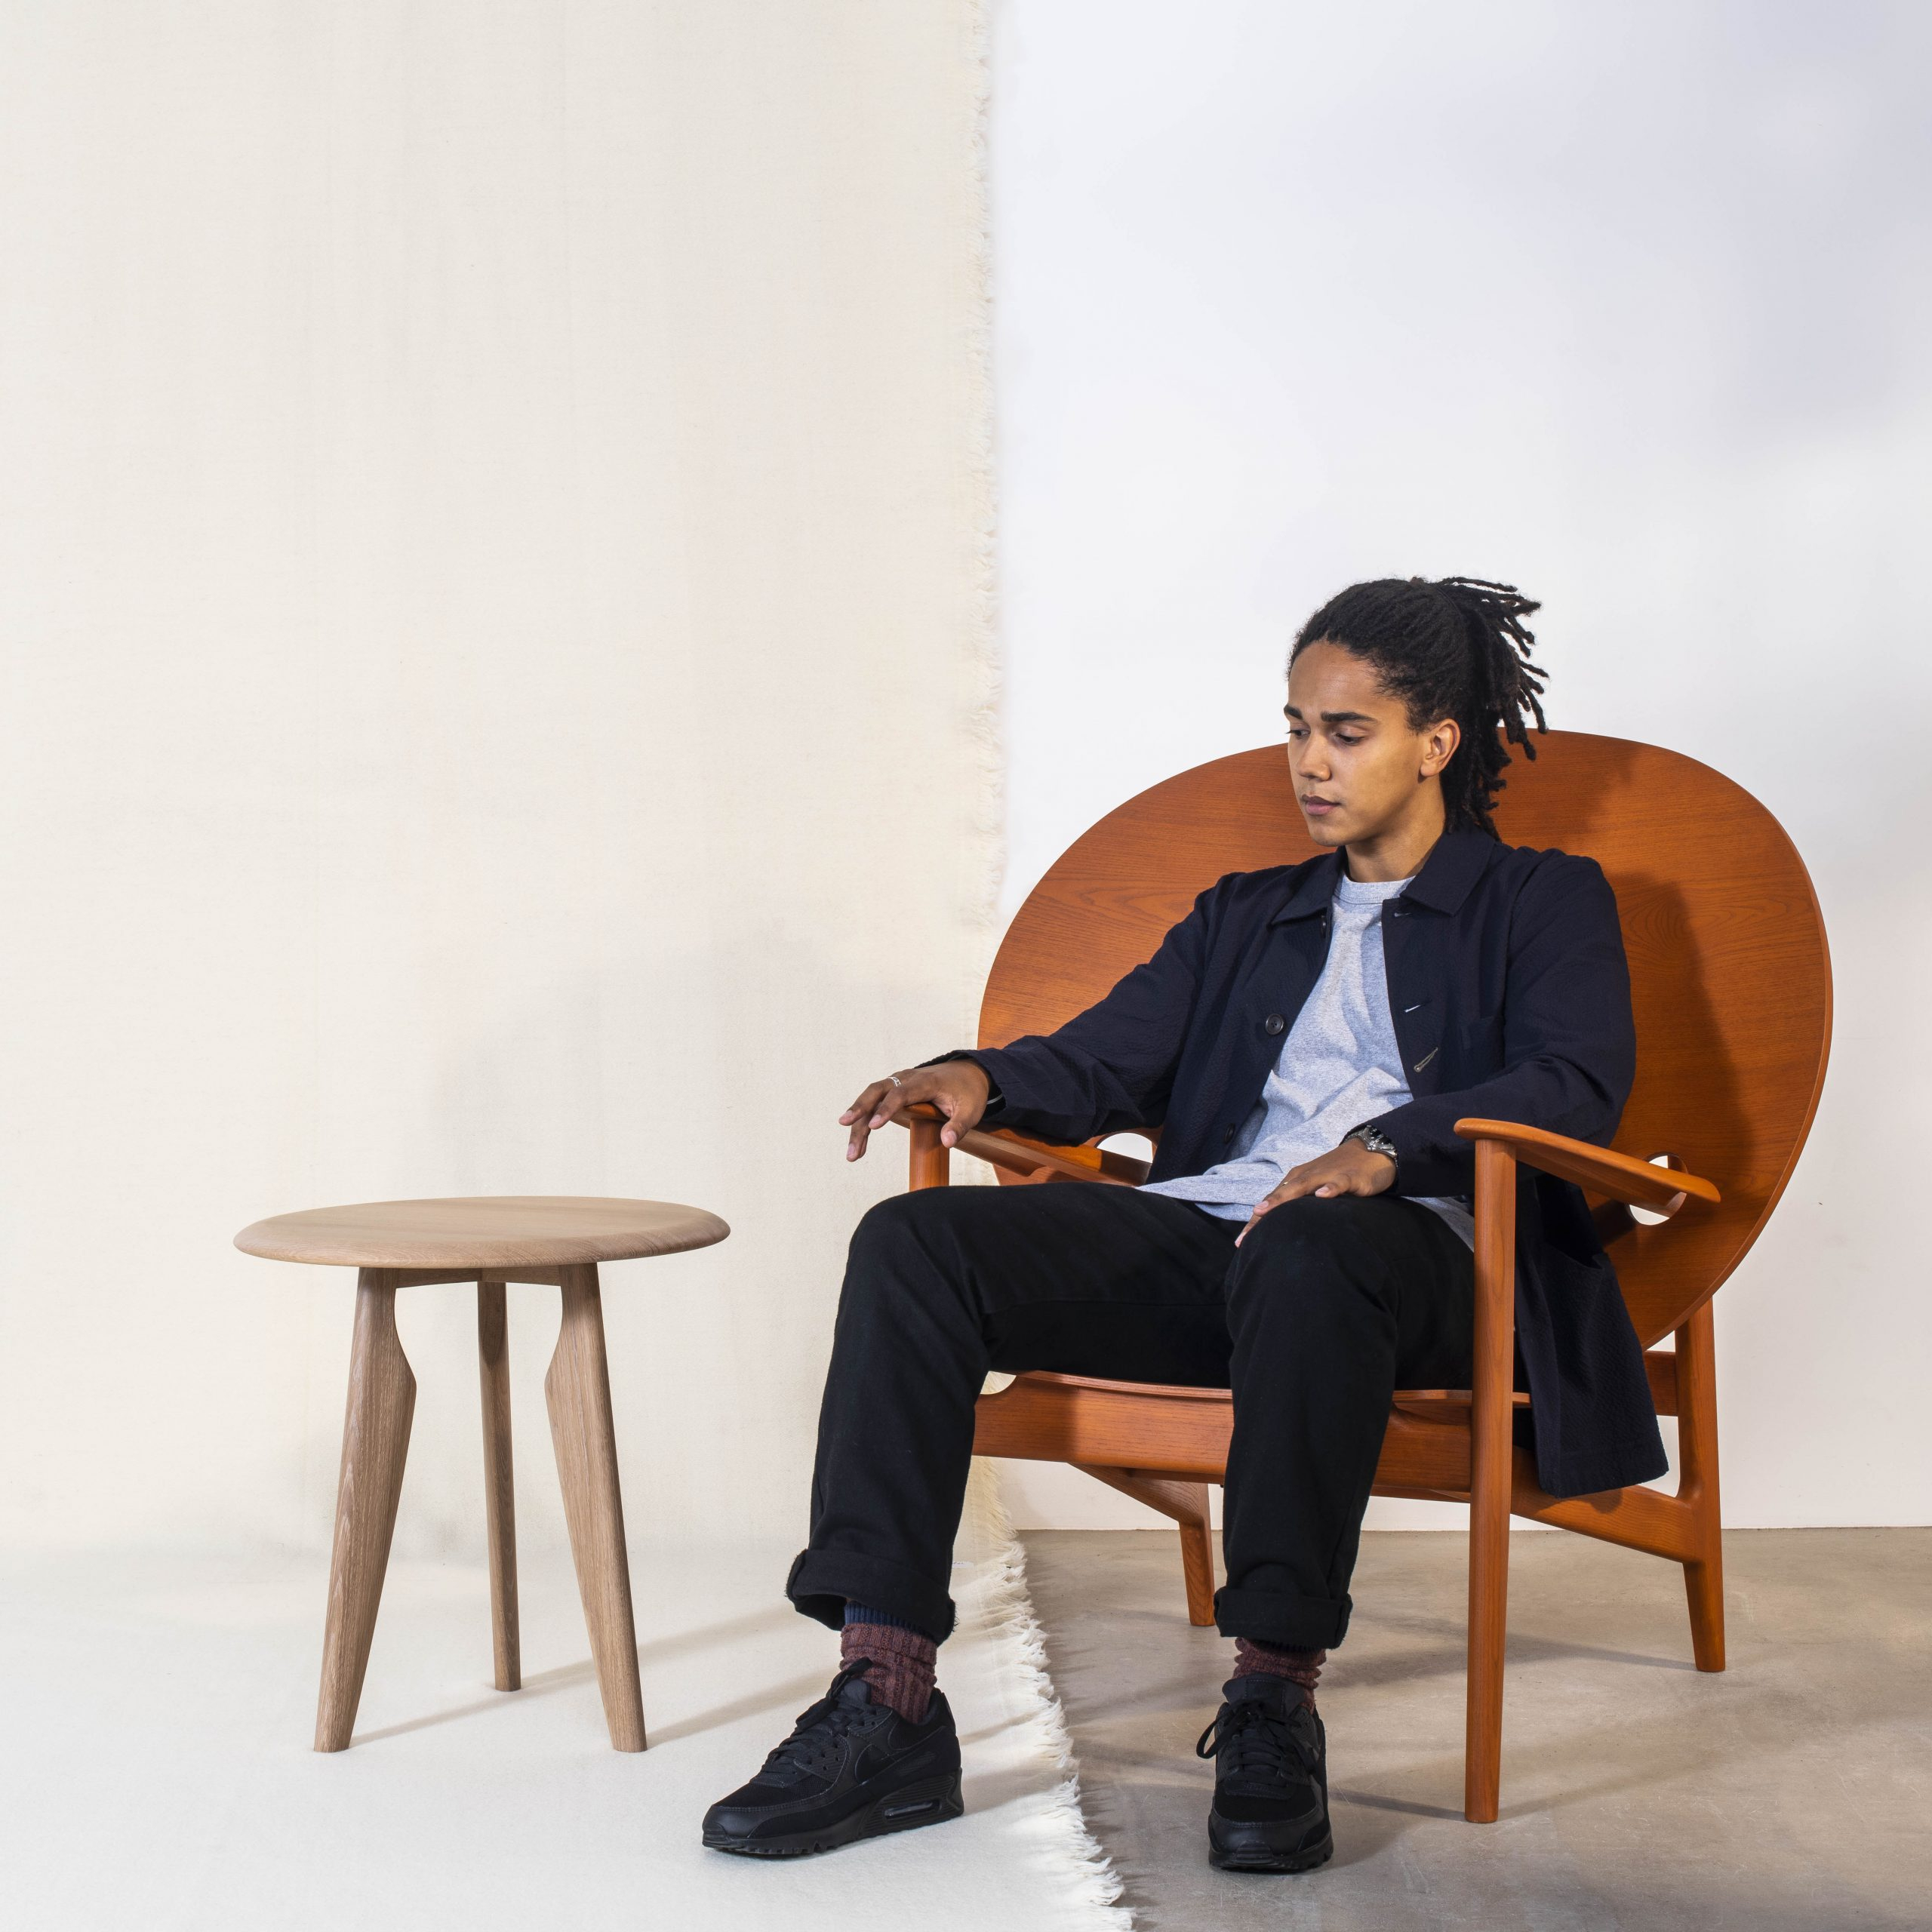 Artist Mac Collins reclines in a circle backed orange chair besides a side table, looking relaxed and dressed in navy, black and blue.